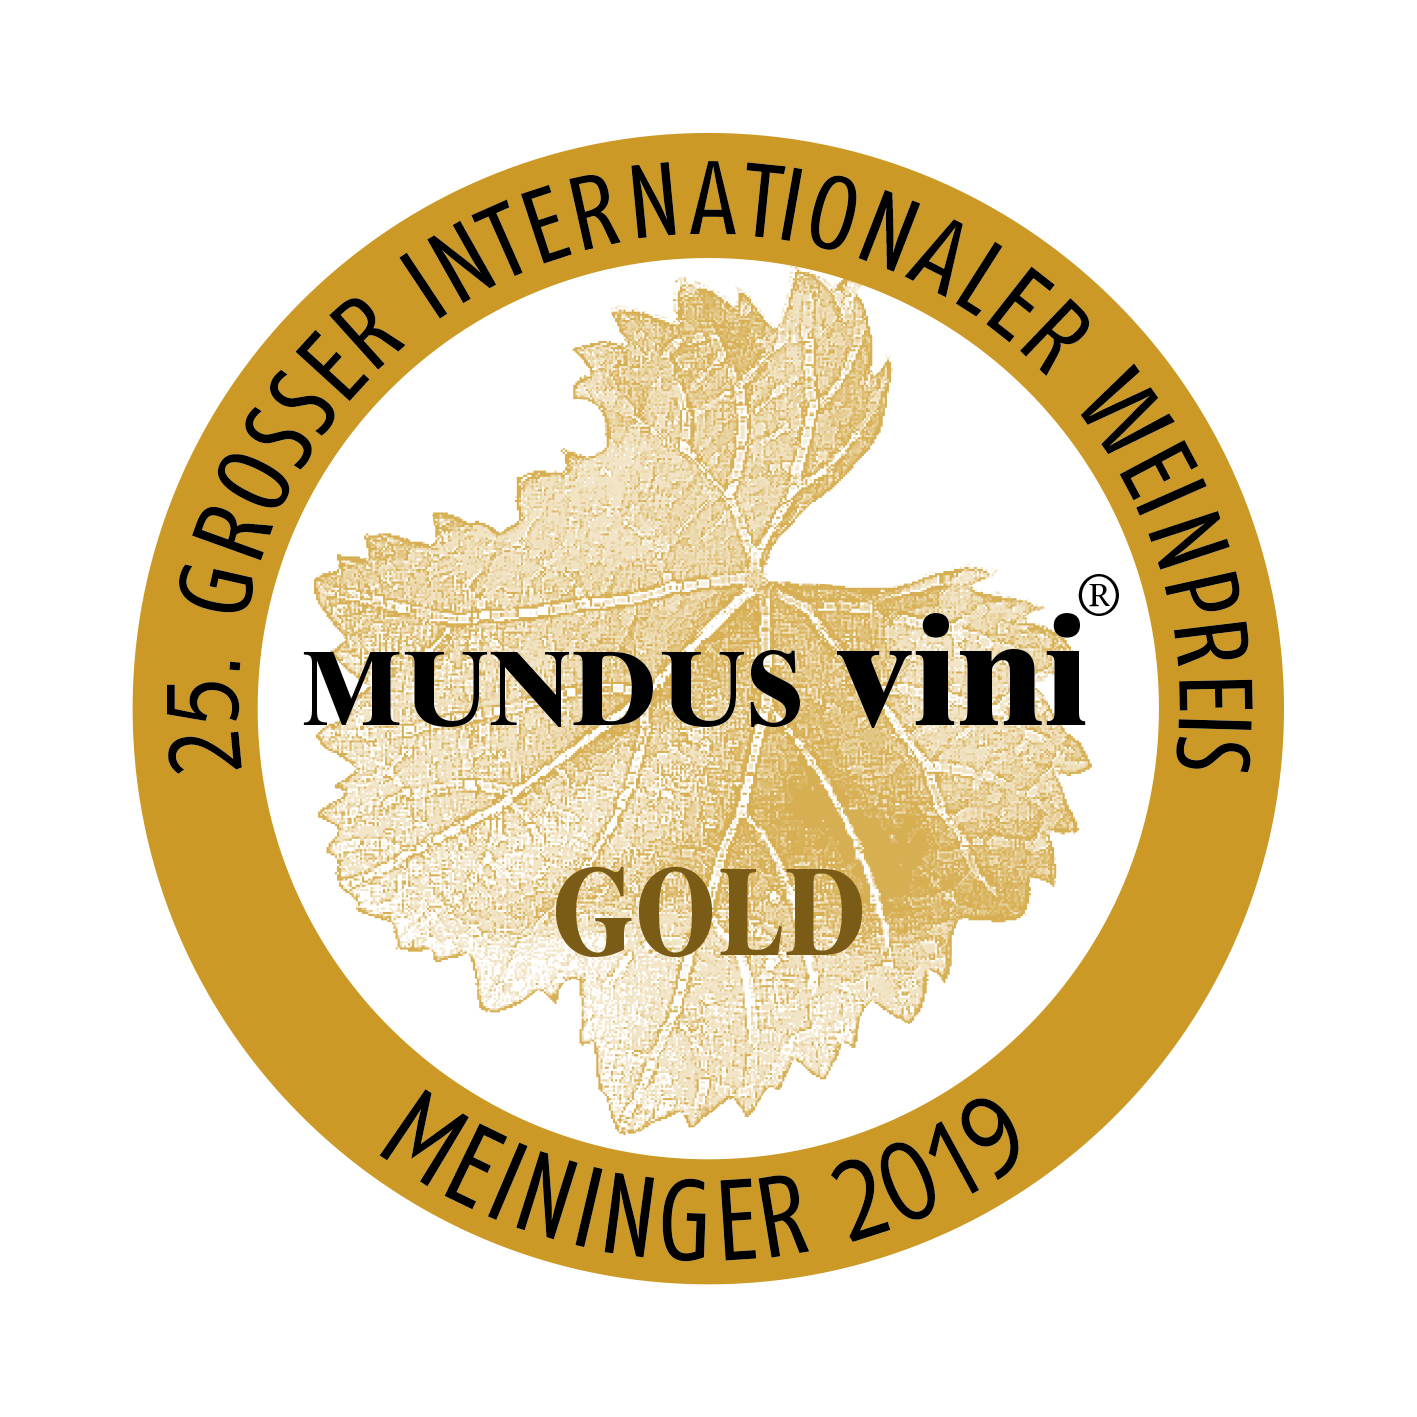 September 2019: Mundus Vini gold medal for vintage 2018